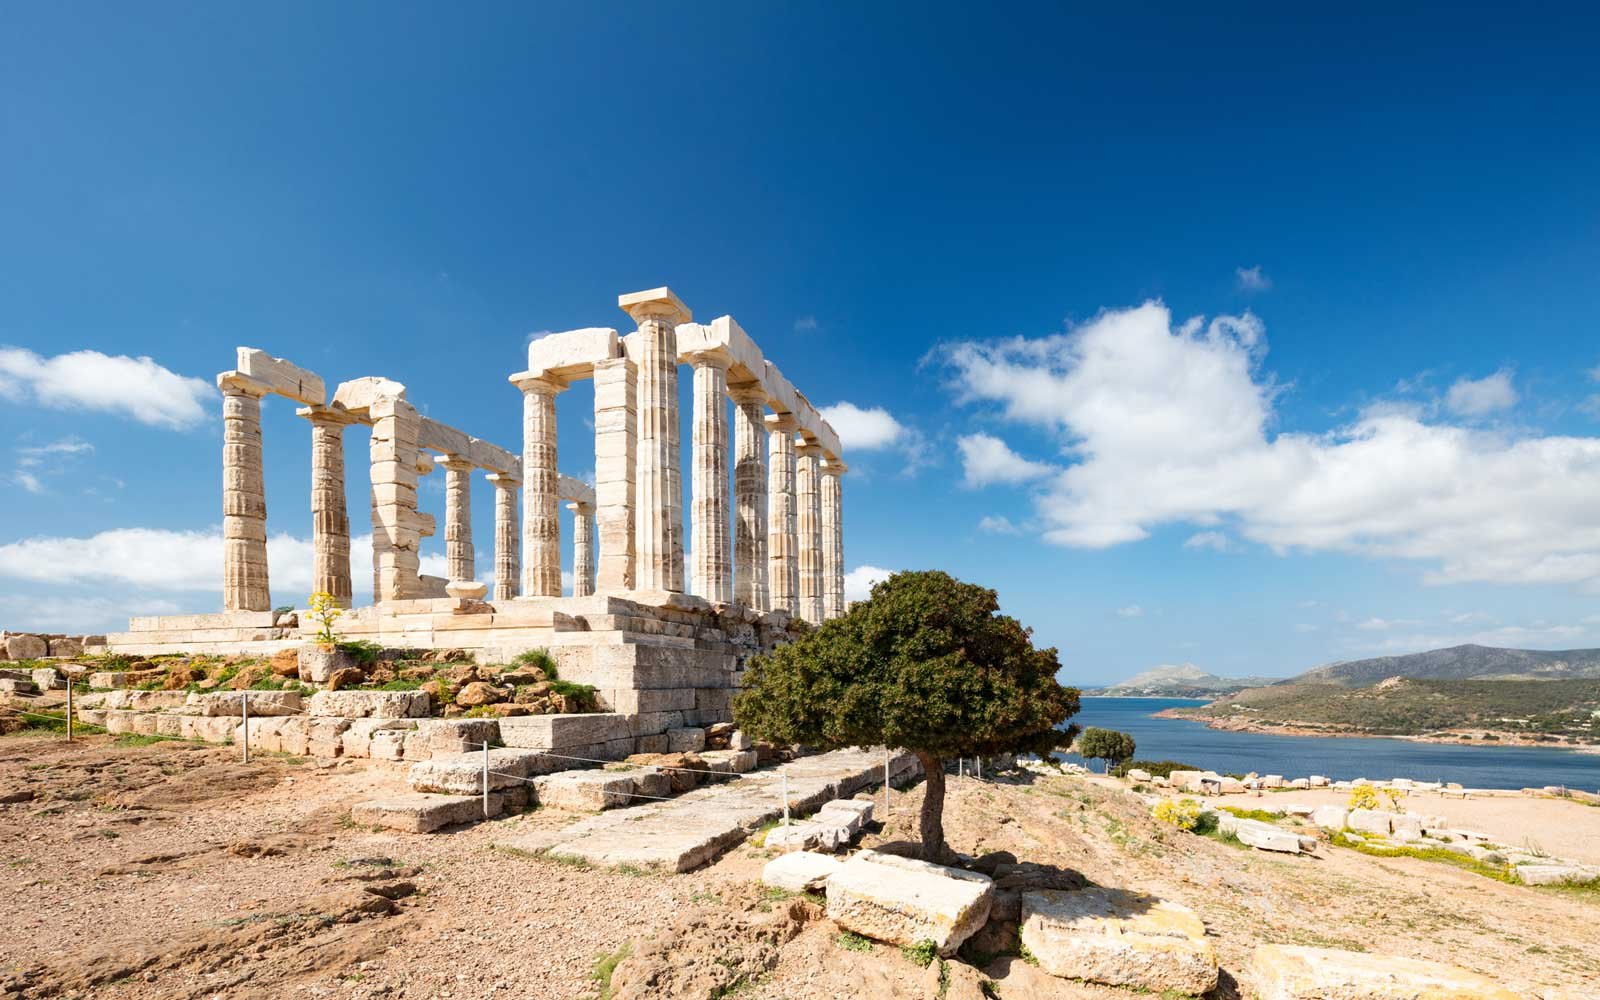 Remains of The Temple of Poseidon on Cape Suonion, Greece